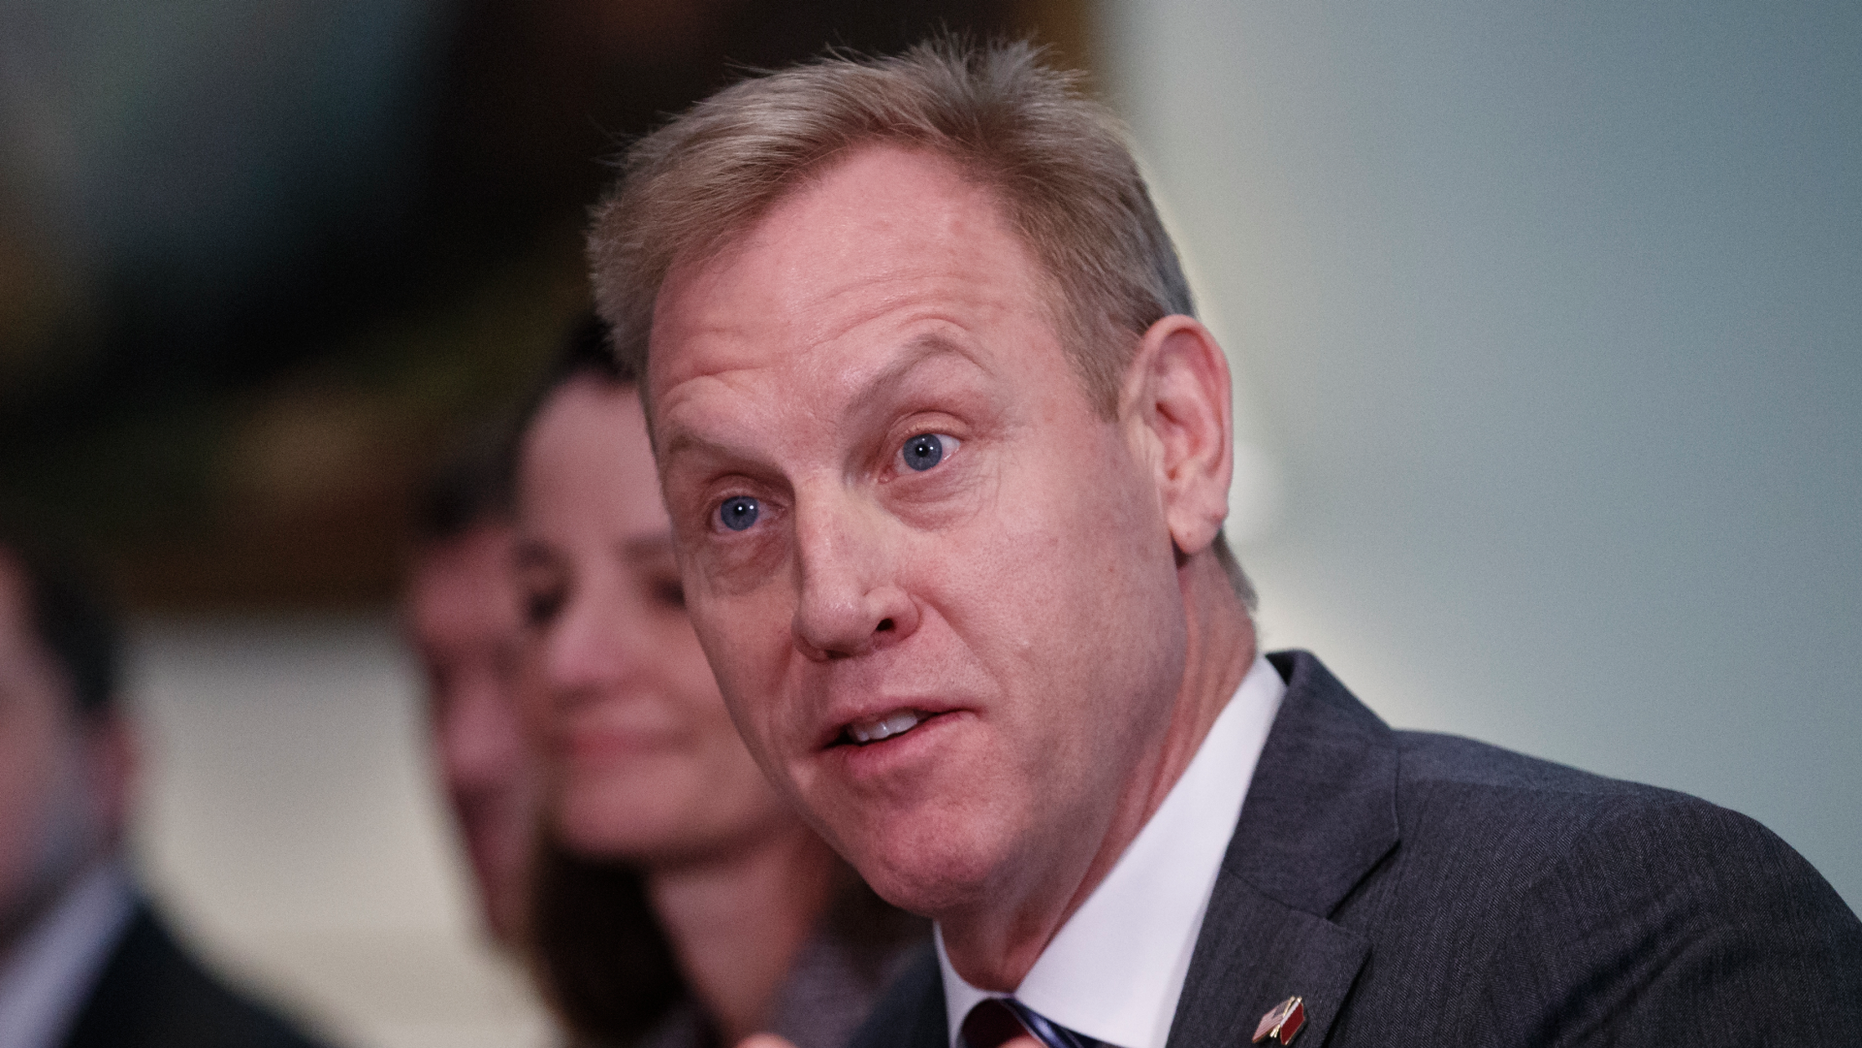 Acting Secretary of Defense Patrick Shanahan. (AP Photo/Carolyn Kaster)